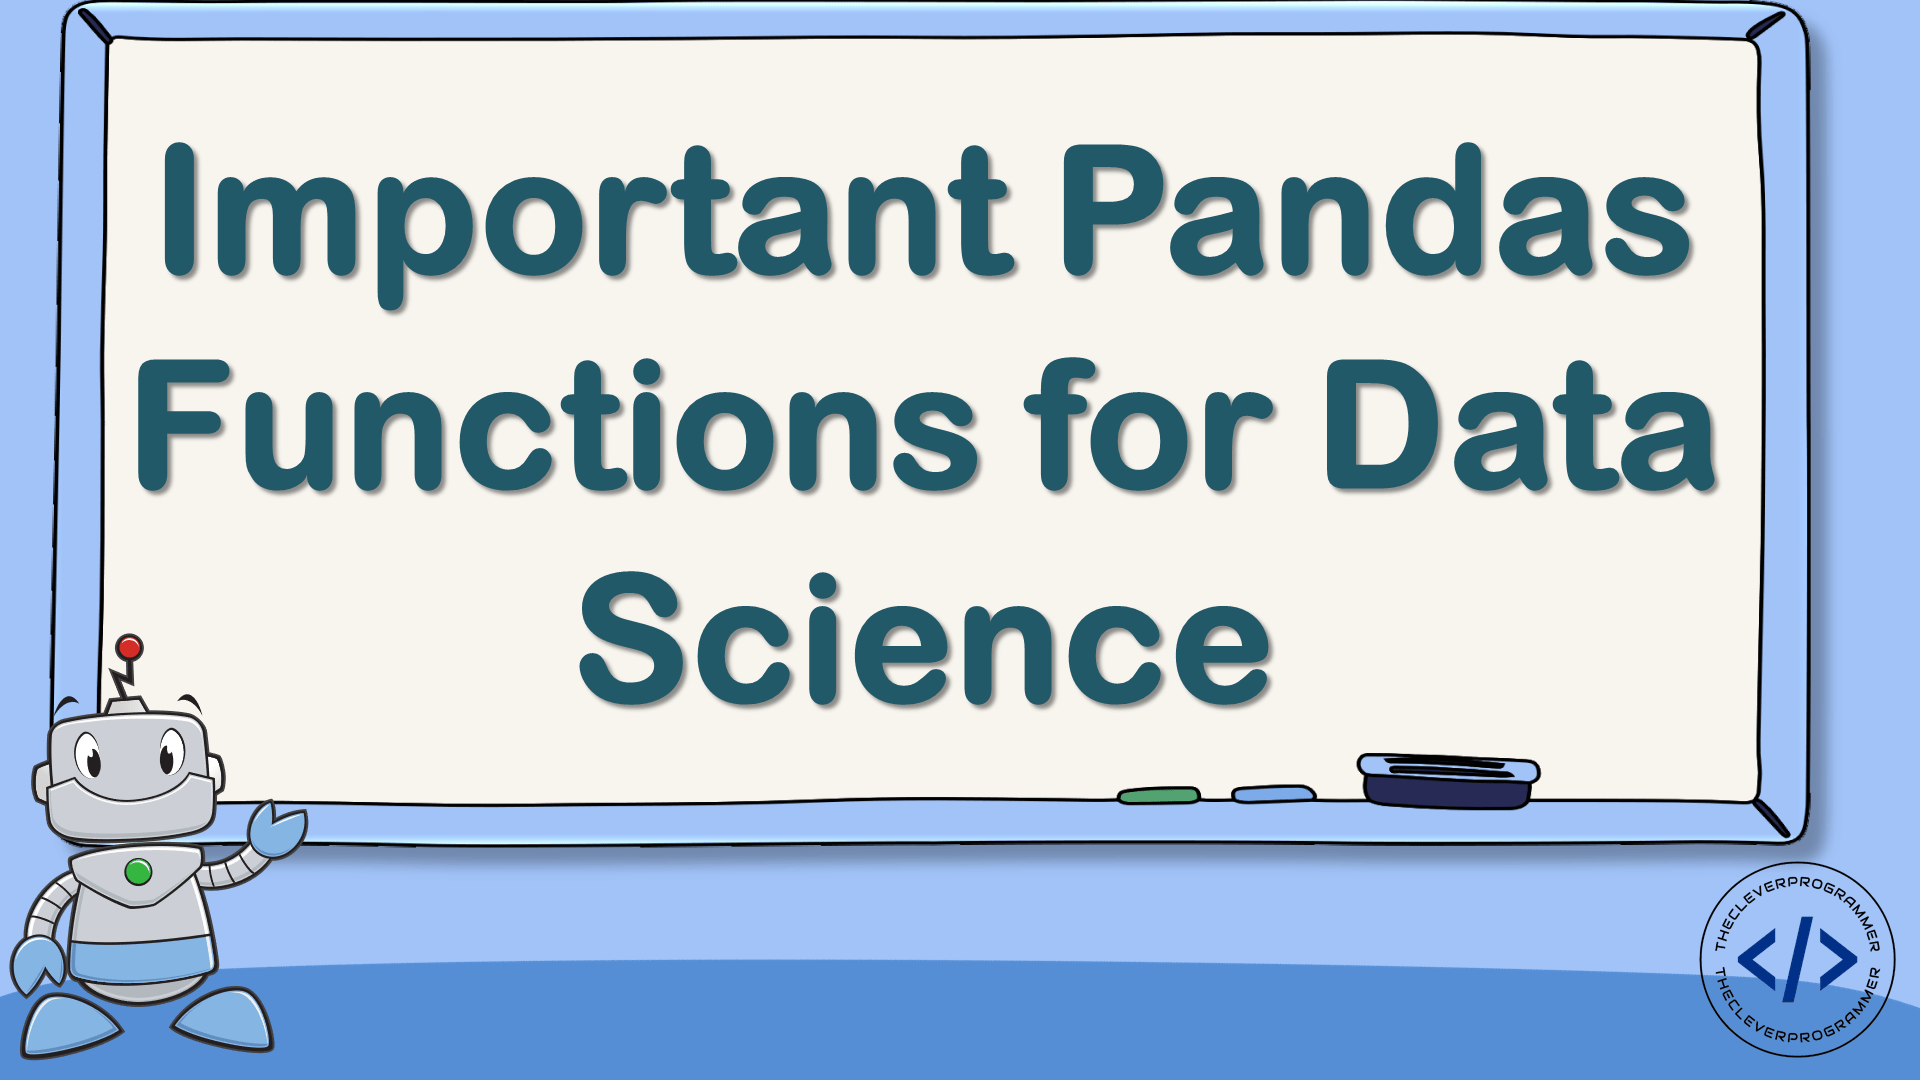 Important Pandas Functions for Data Science